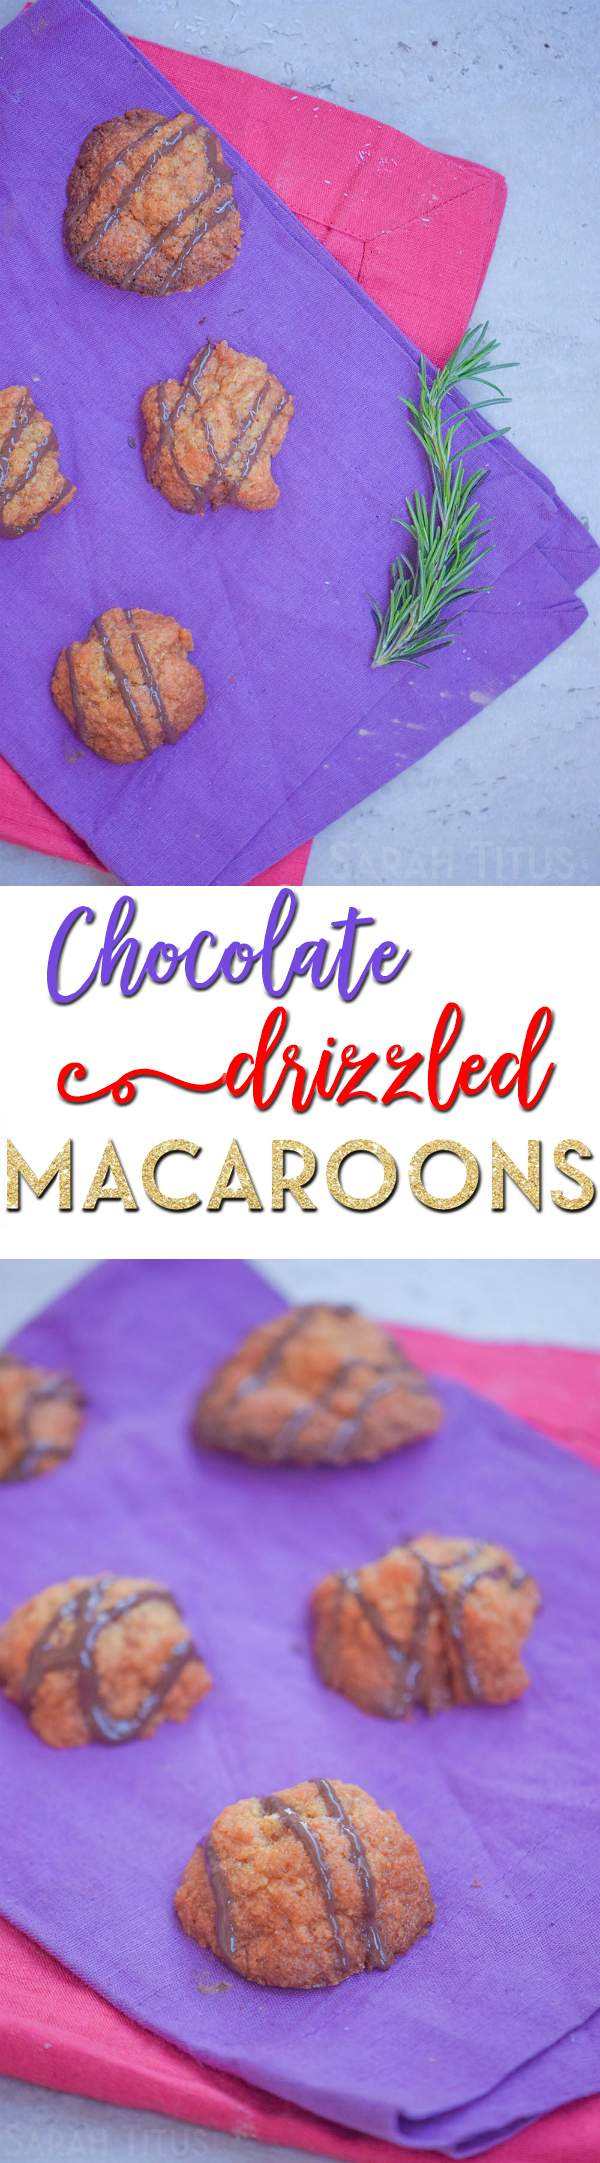 These chocolate drizzled macaroons are the PERFECT recipe if you love coconut treats, and the maple syrup makes them super decadent!